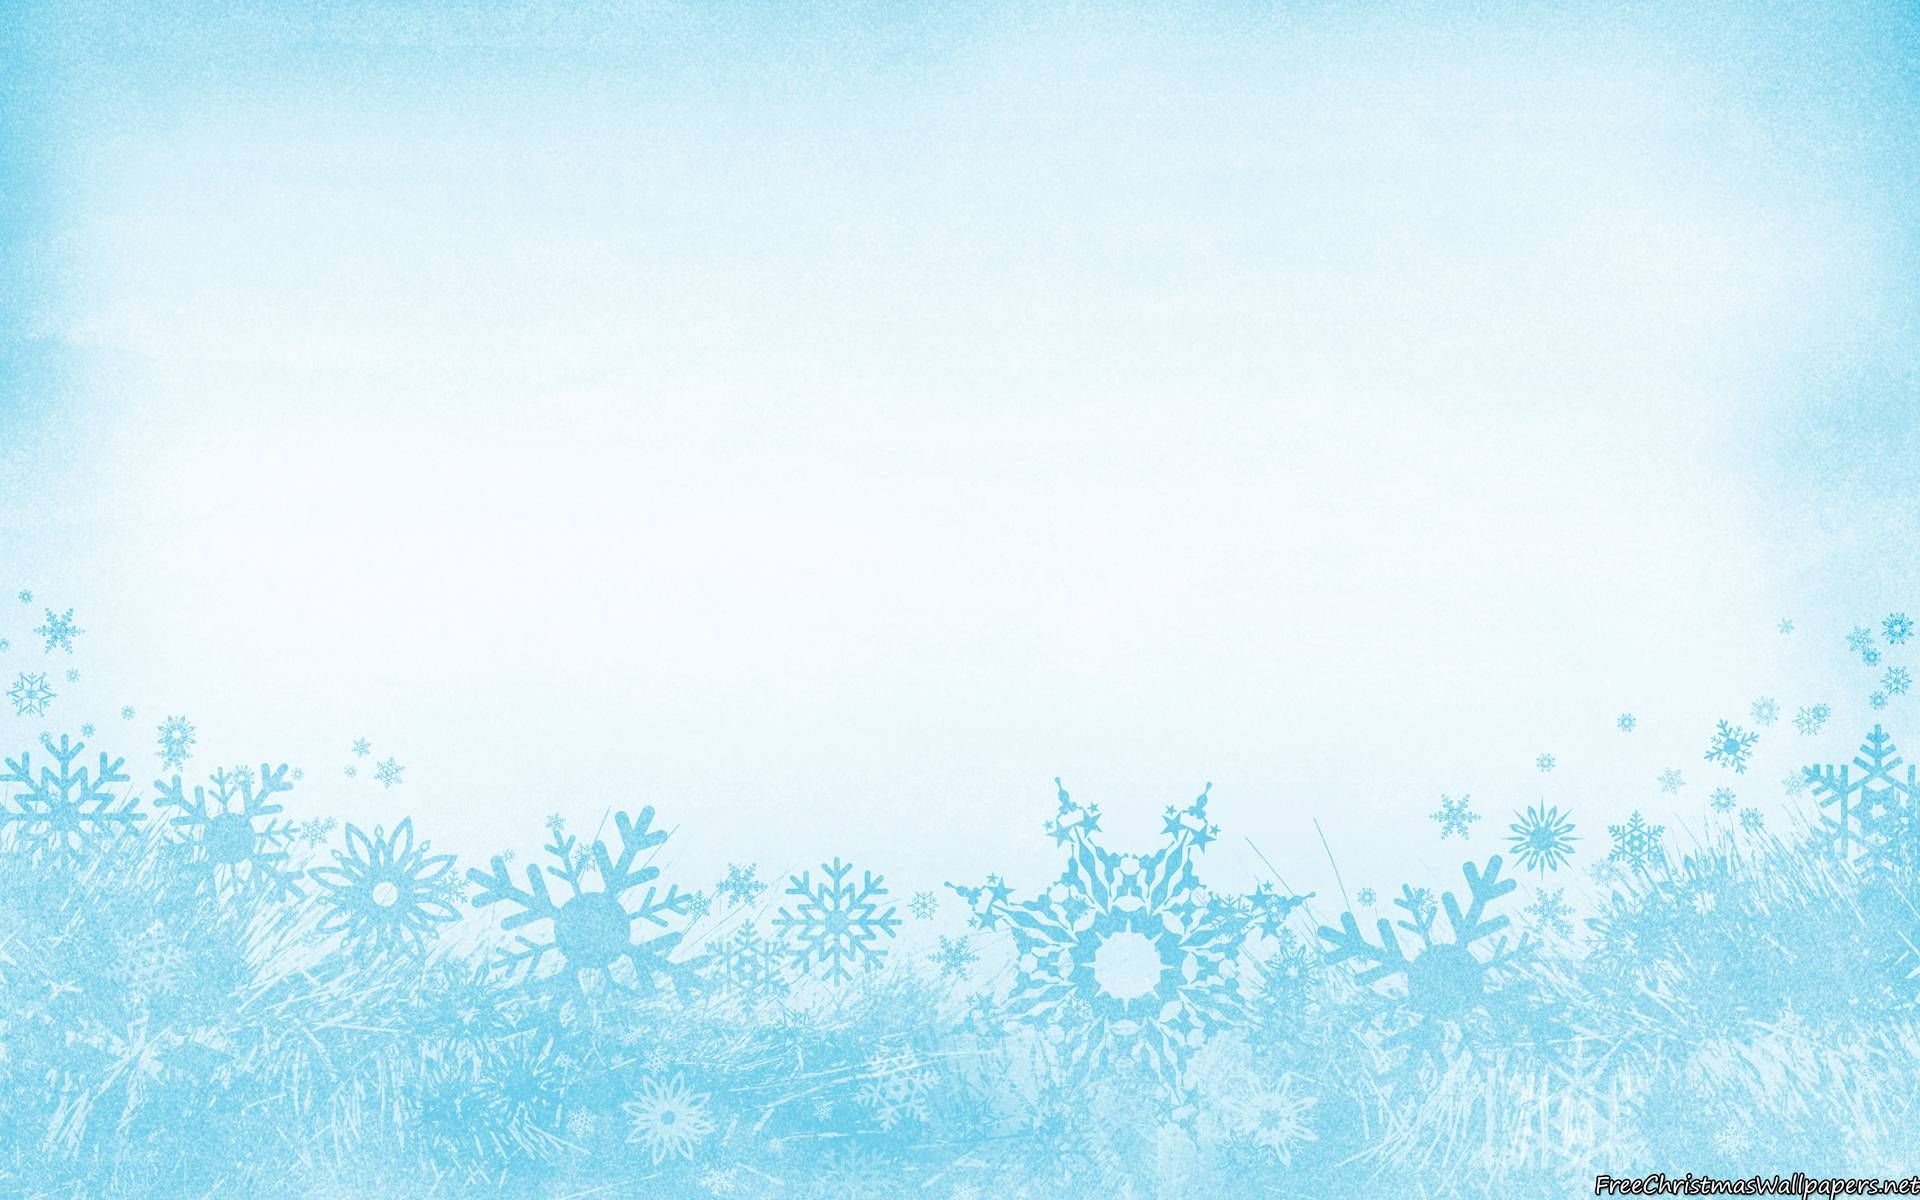 undefined Backgrounds For Christmas (33 Wallpapers) | Adorable ...